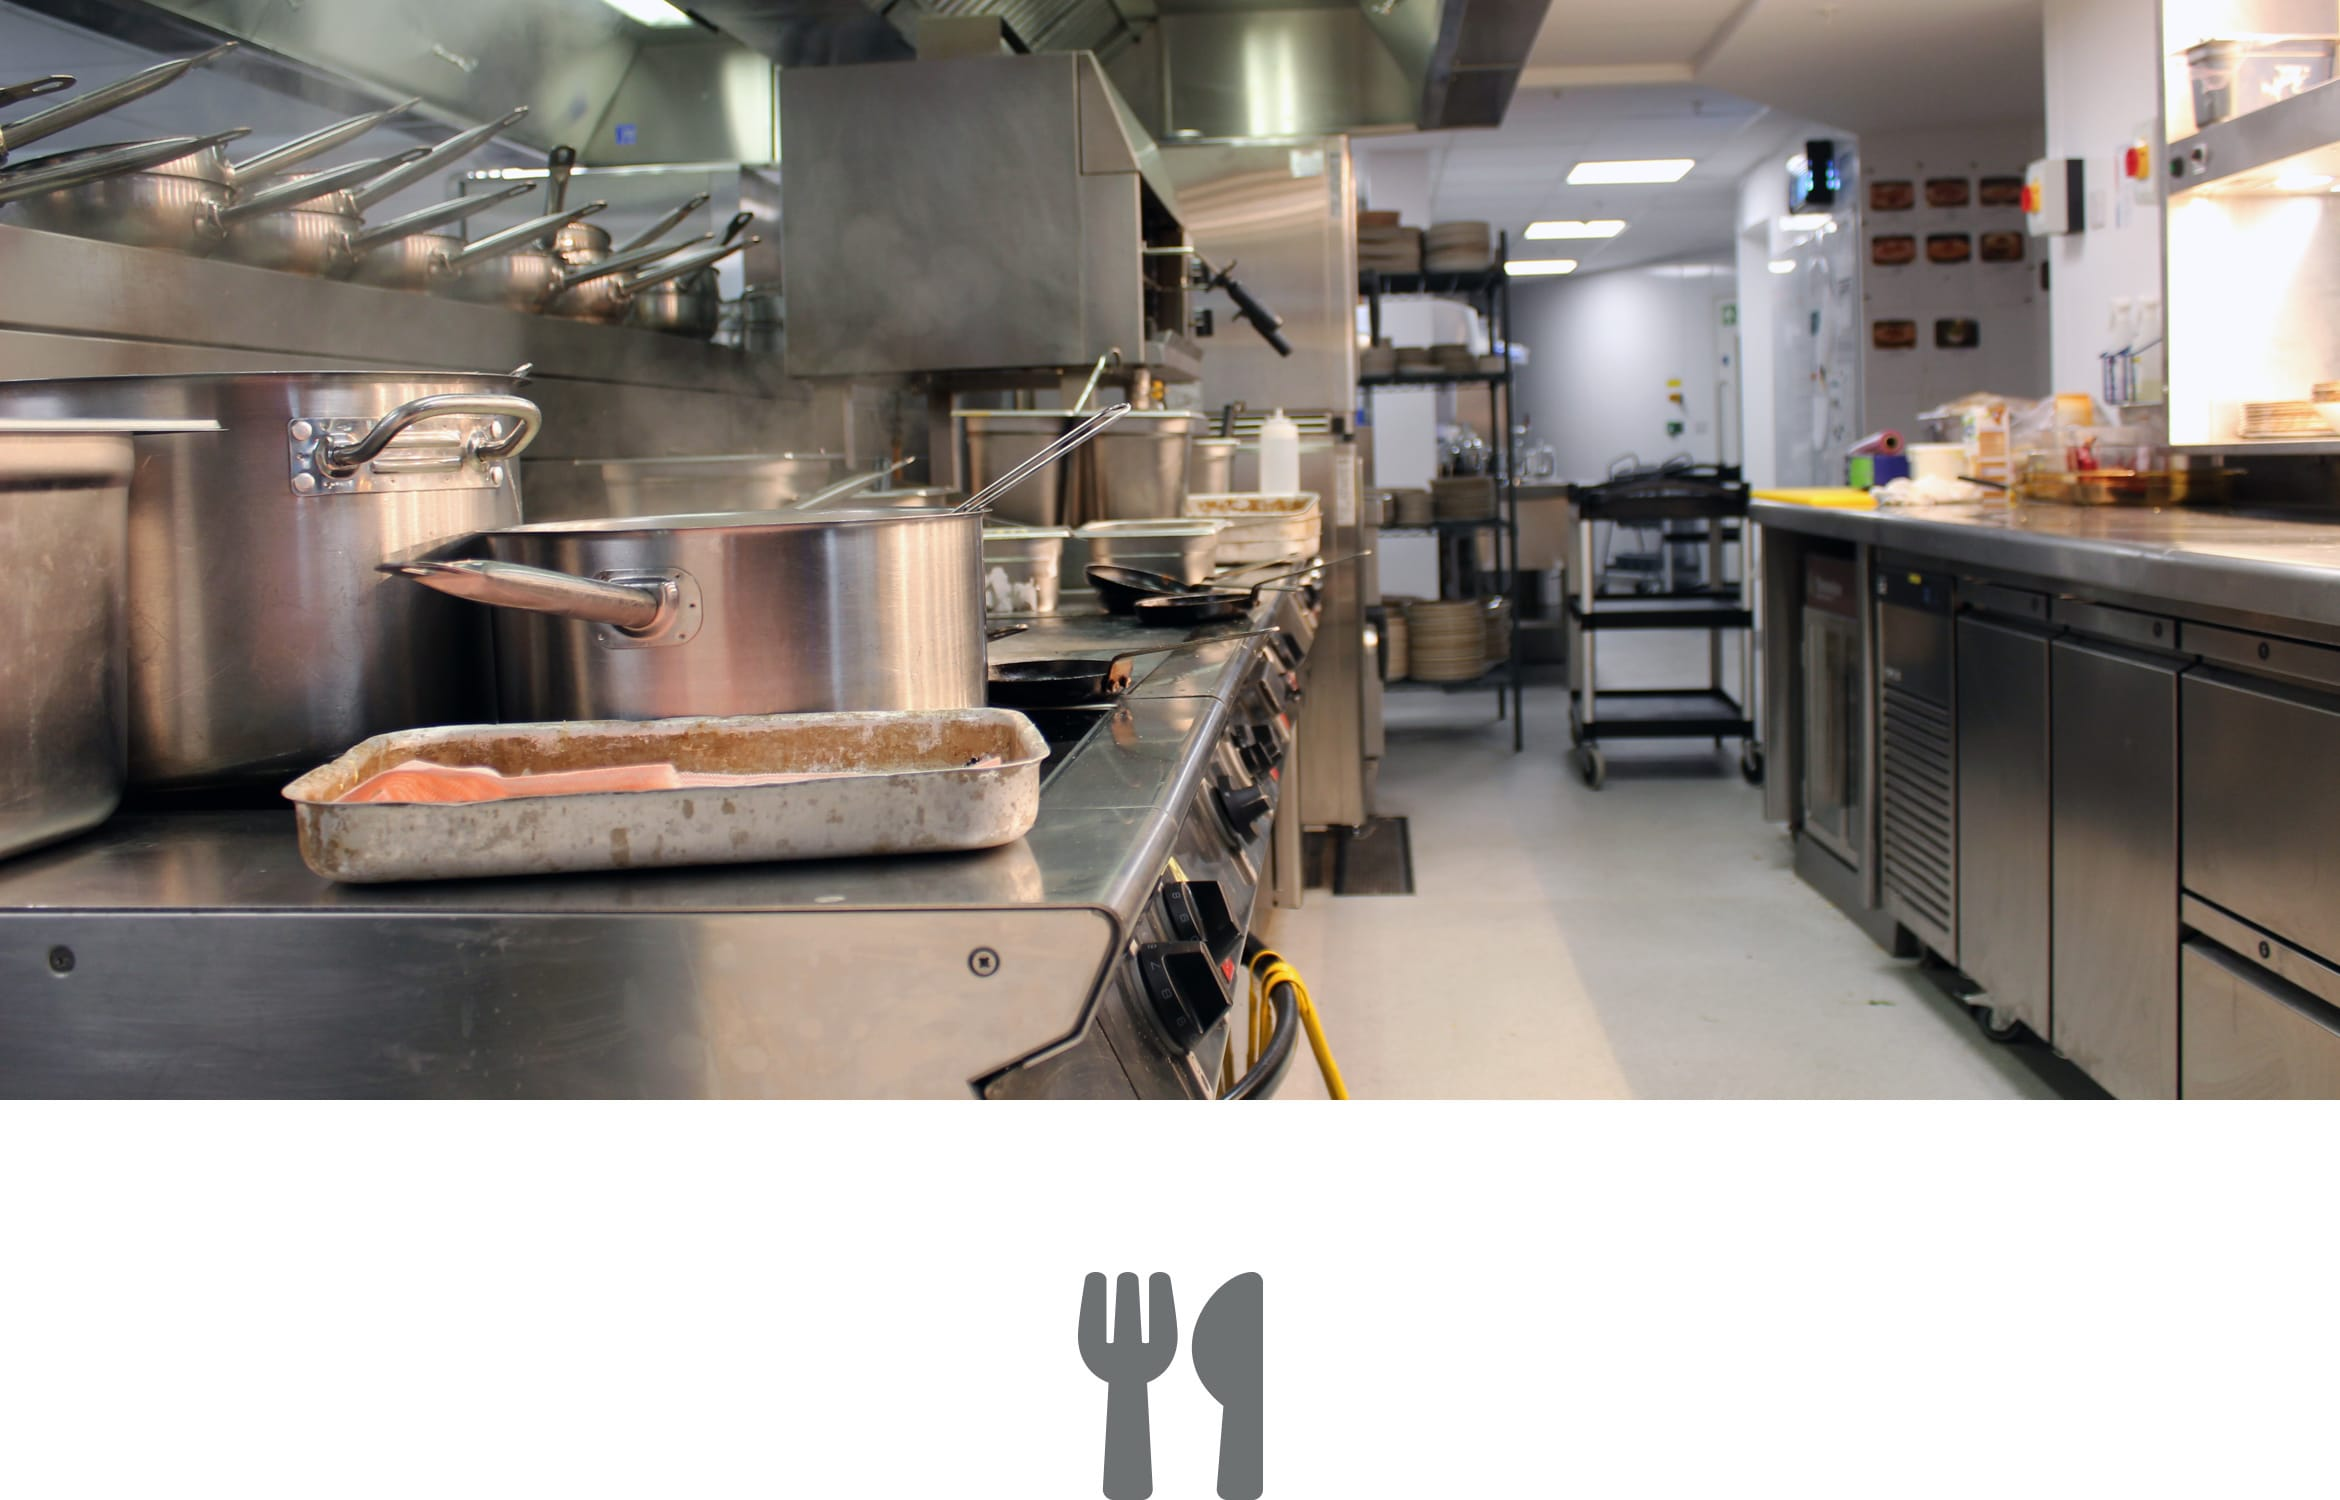 An empty, clean commercial kitchen